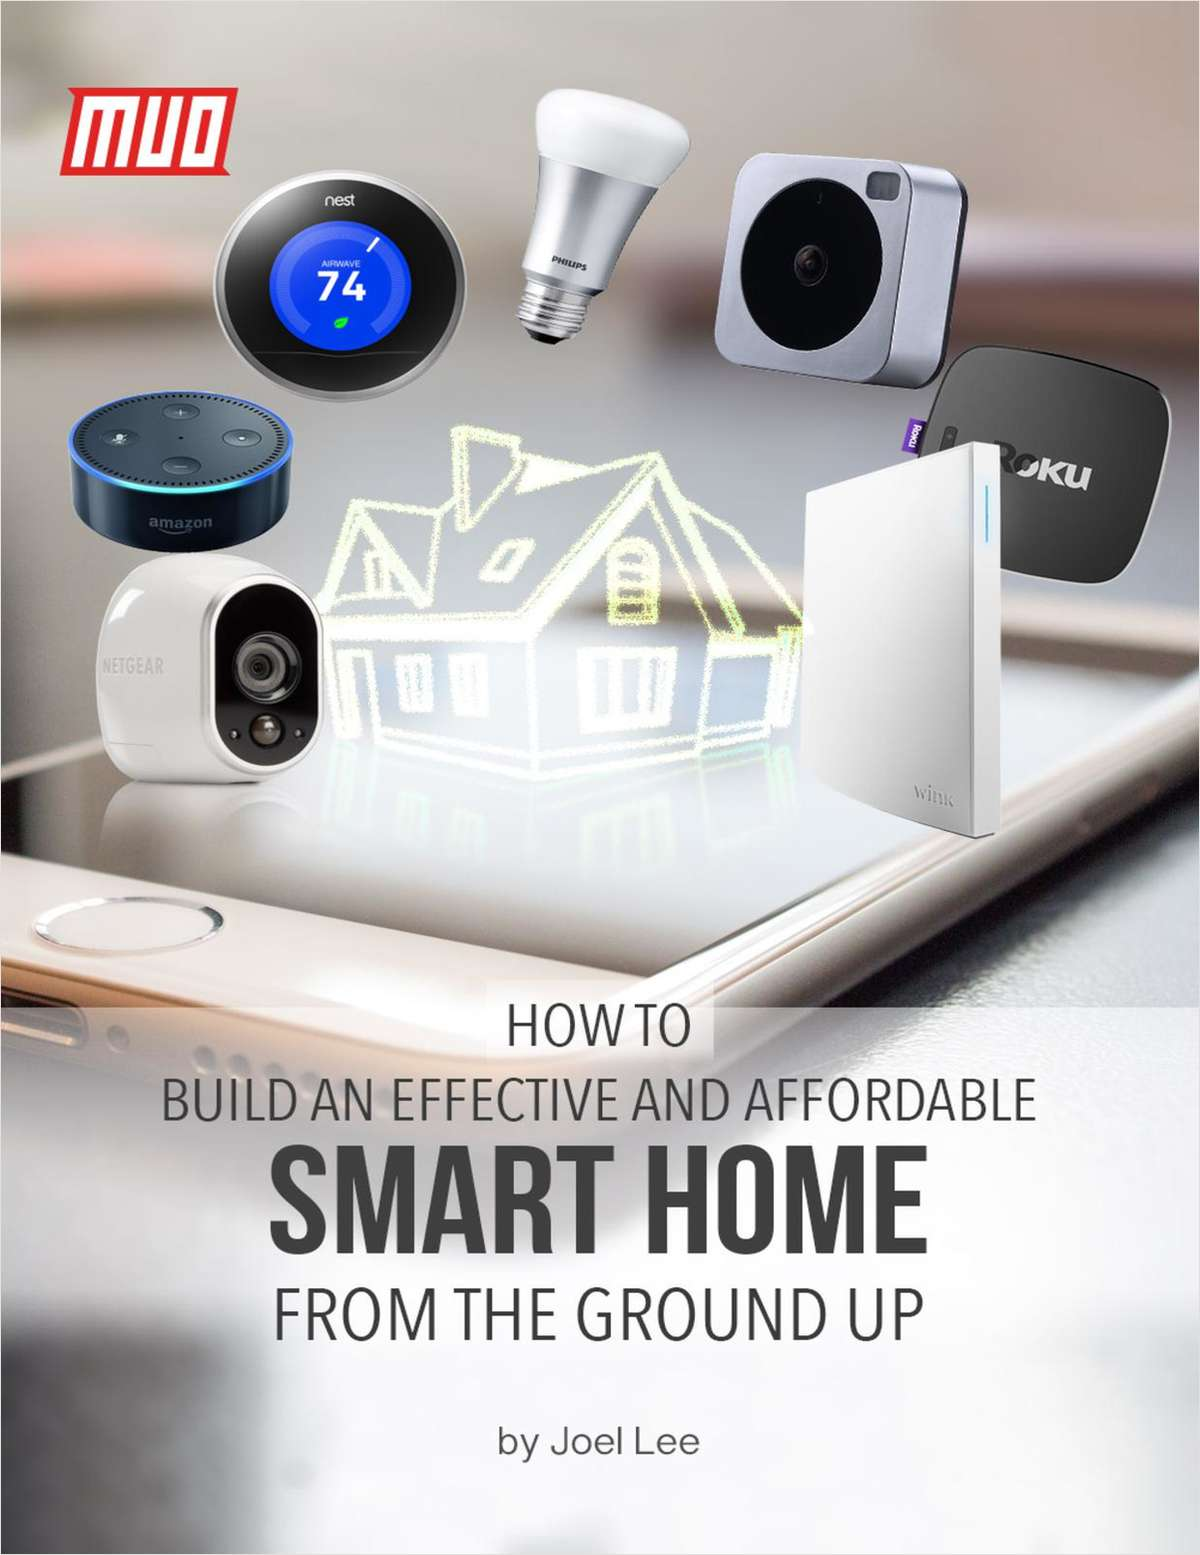 How to Build an Effective and Affordable Smart Home From the Ground Up